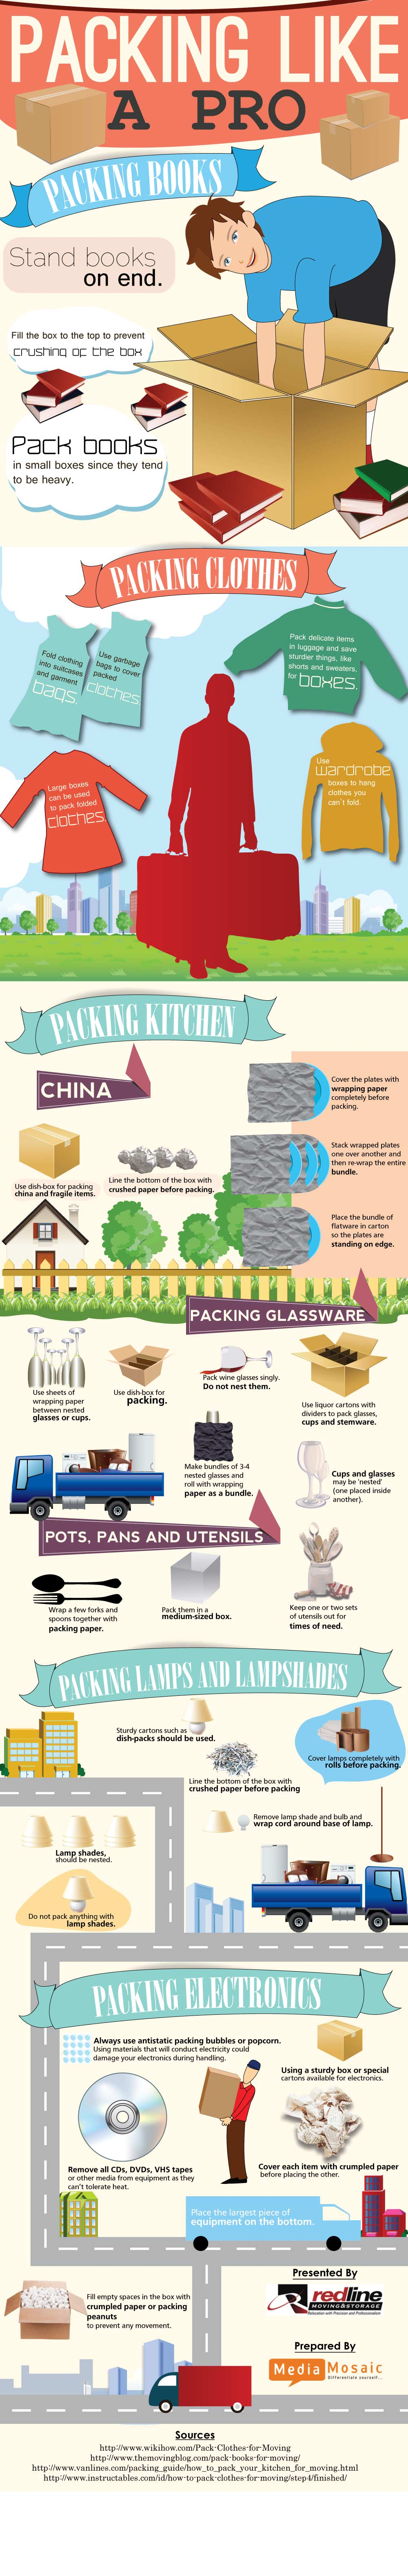 packing-like-a-pro-infographic